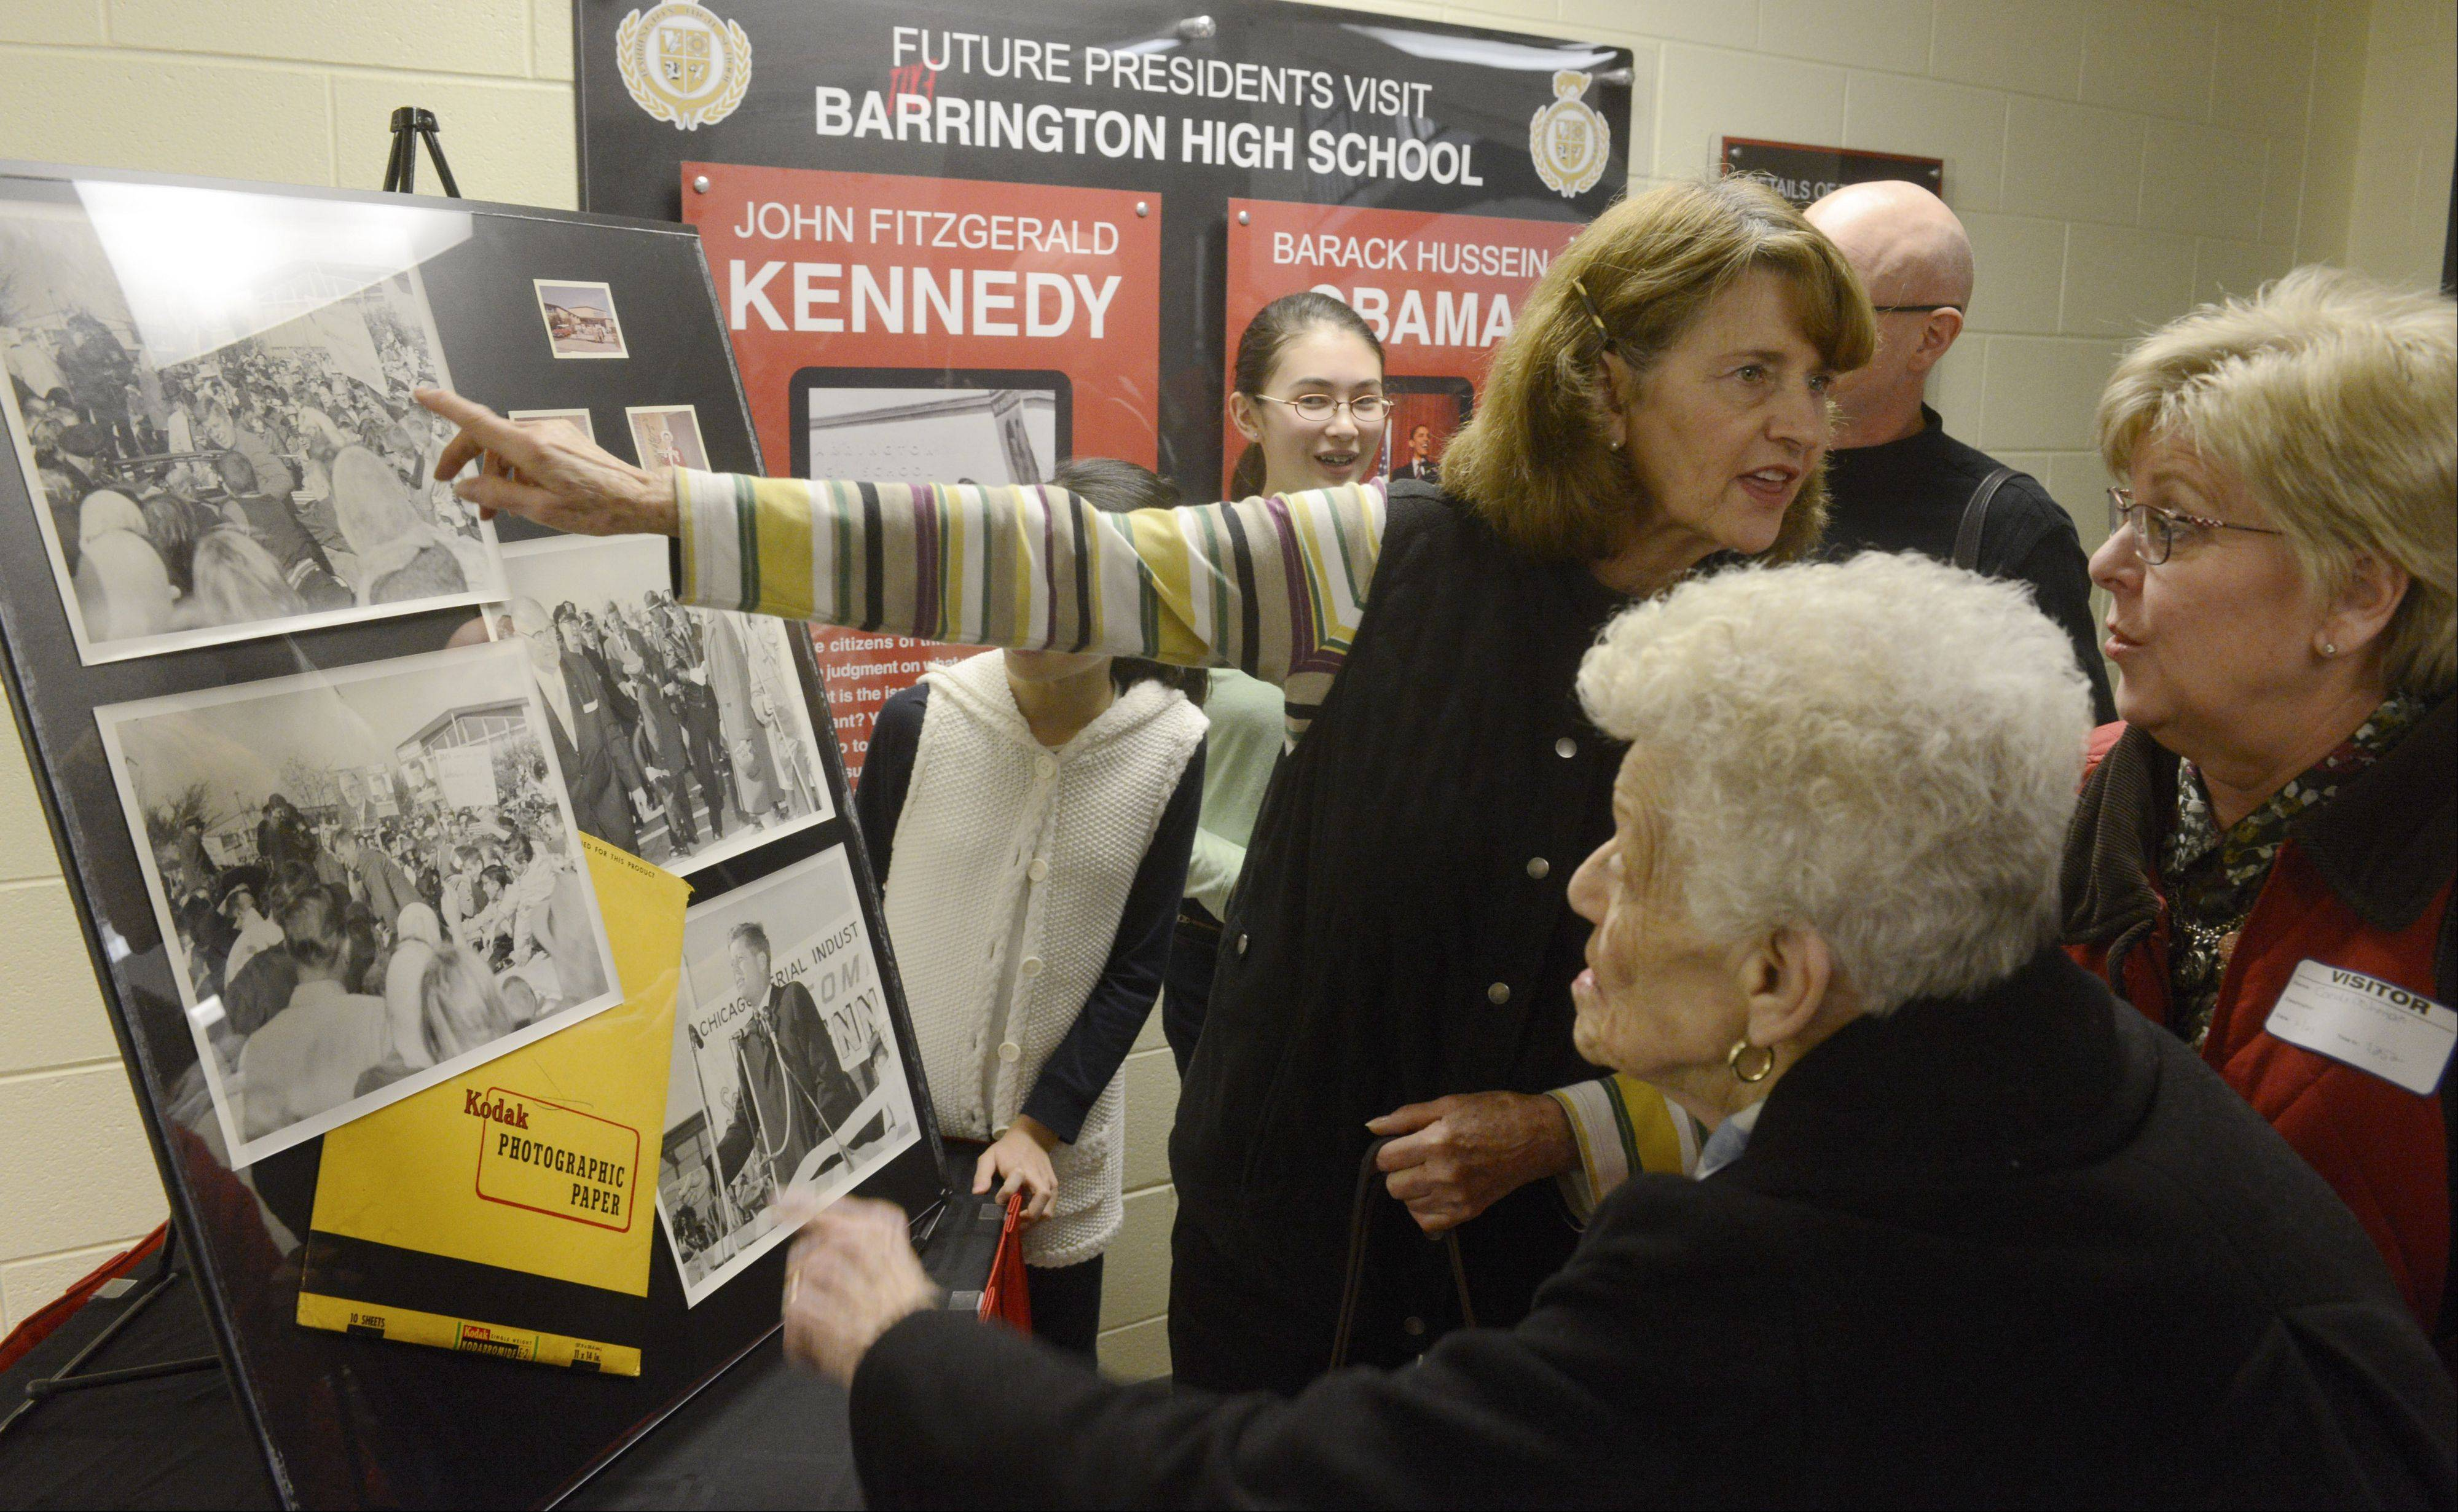 Joanne Barrett, front, and her daughter, Candi Ashman, right, talk with Kay Quam about newly discovered photos of John F. Kennedy's October 1960 visit to Barrington High School, unveiled Tuesday at the school. Barrett's father is shown in one of the photos.